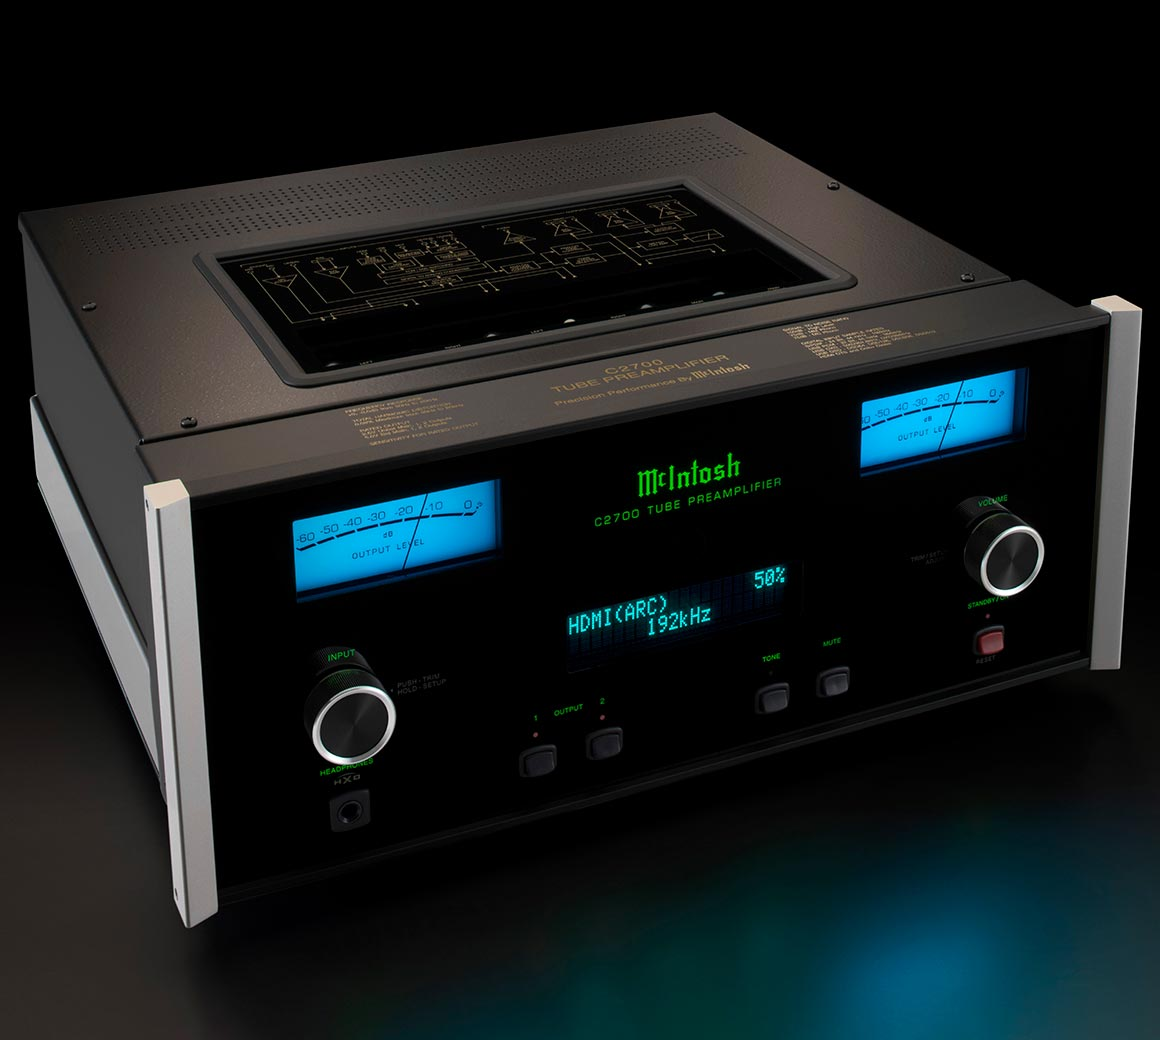 McIntosh partners new Hi-Res DAC with vacuum tubes in C2700 preamp